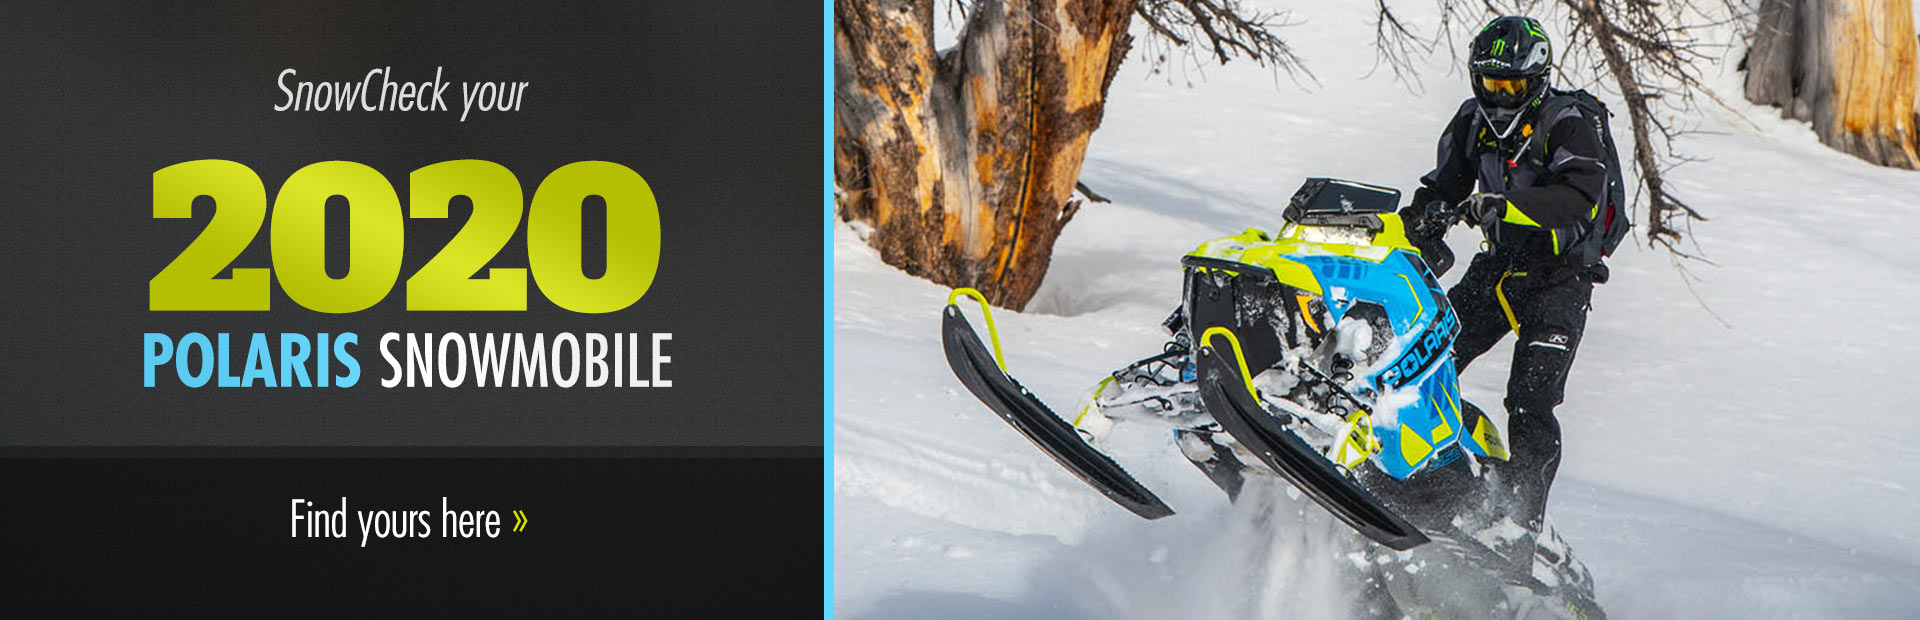 SnowCheck your 2020 Polaris Snowmobile: Find yours here!